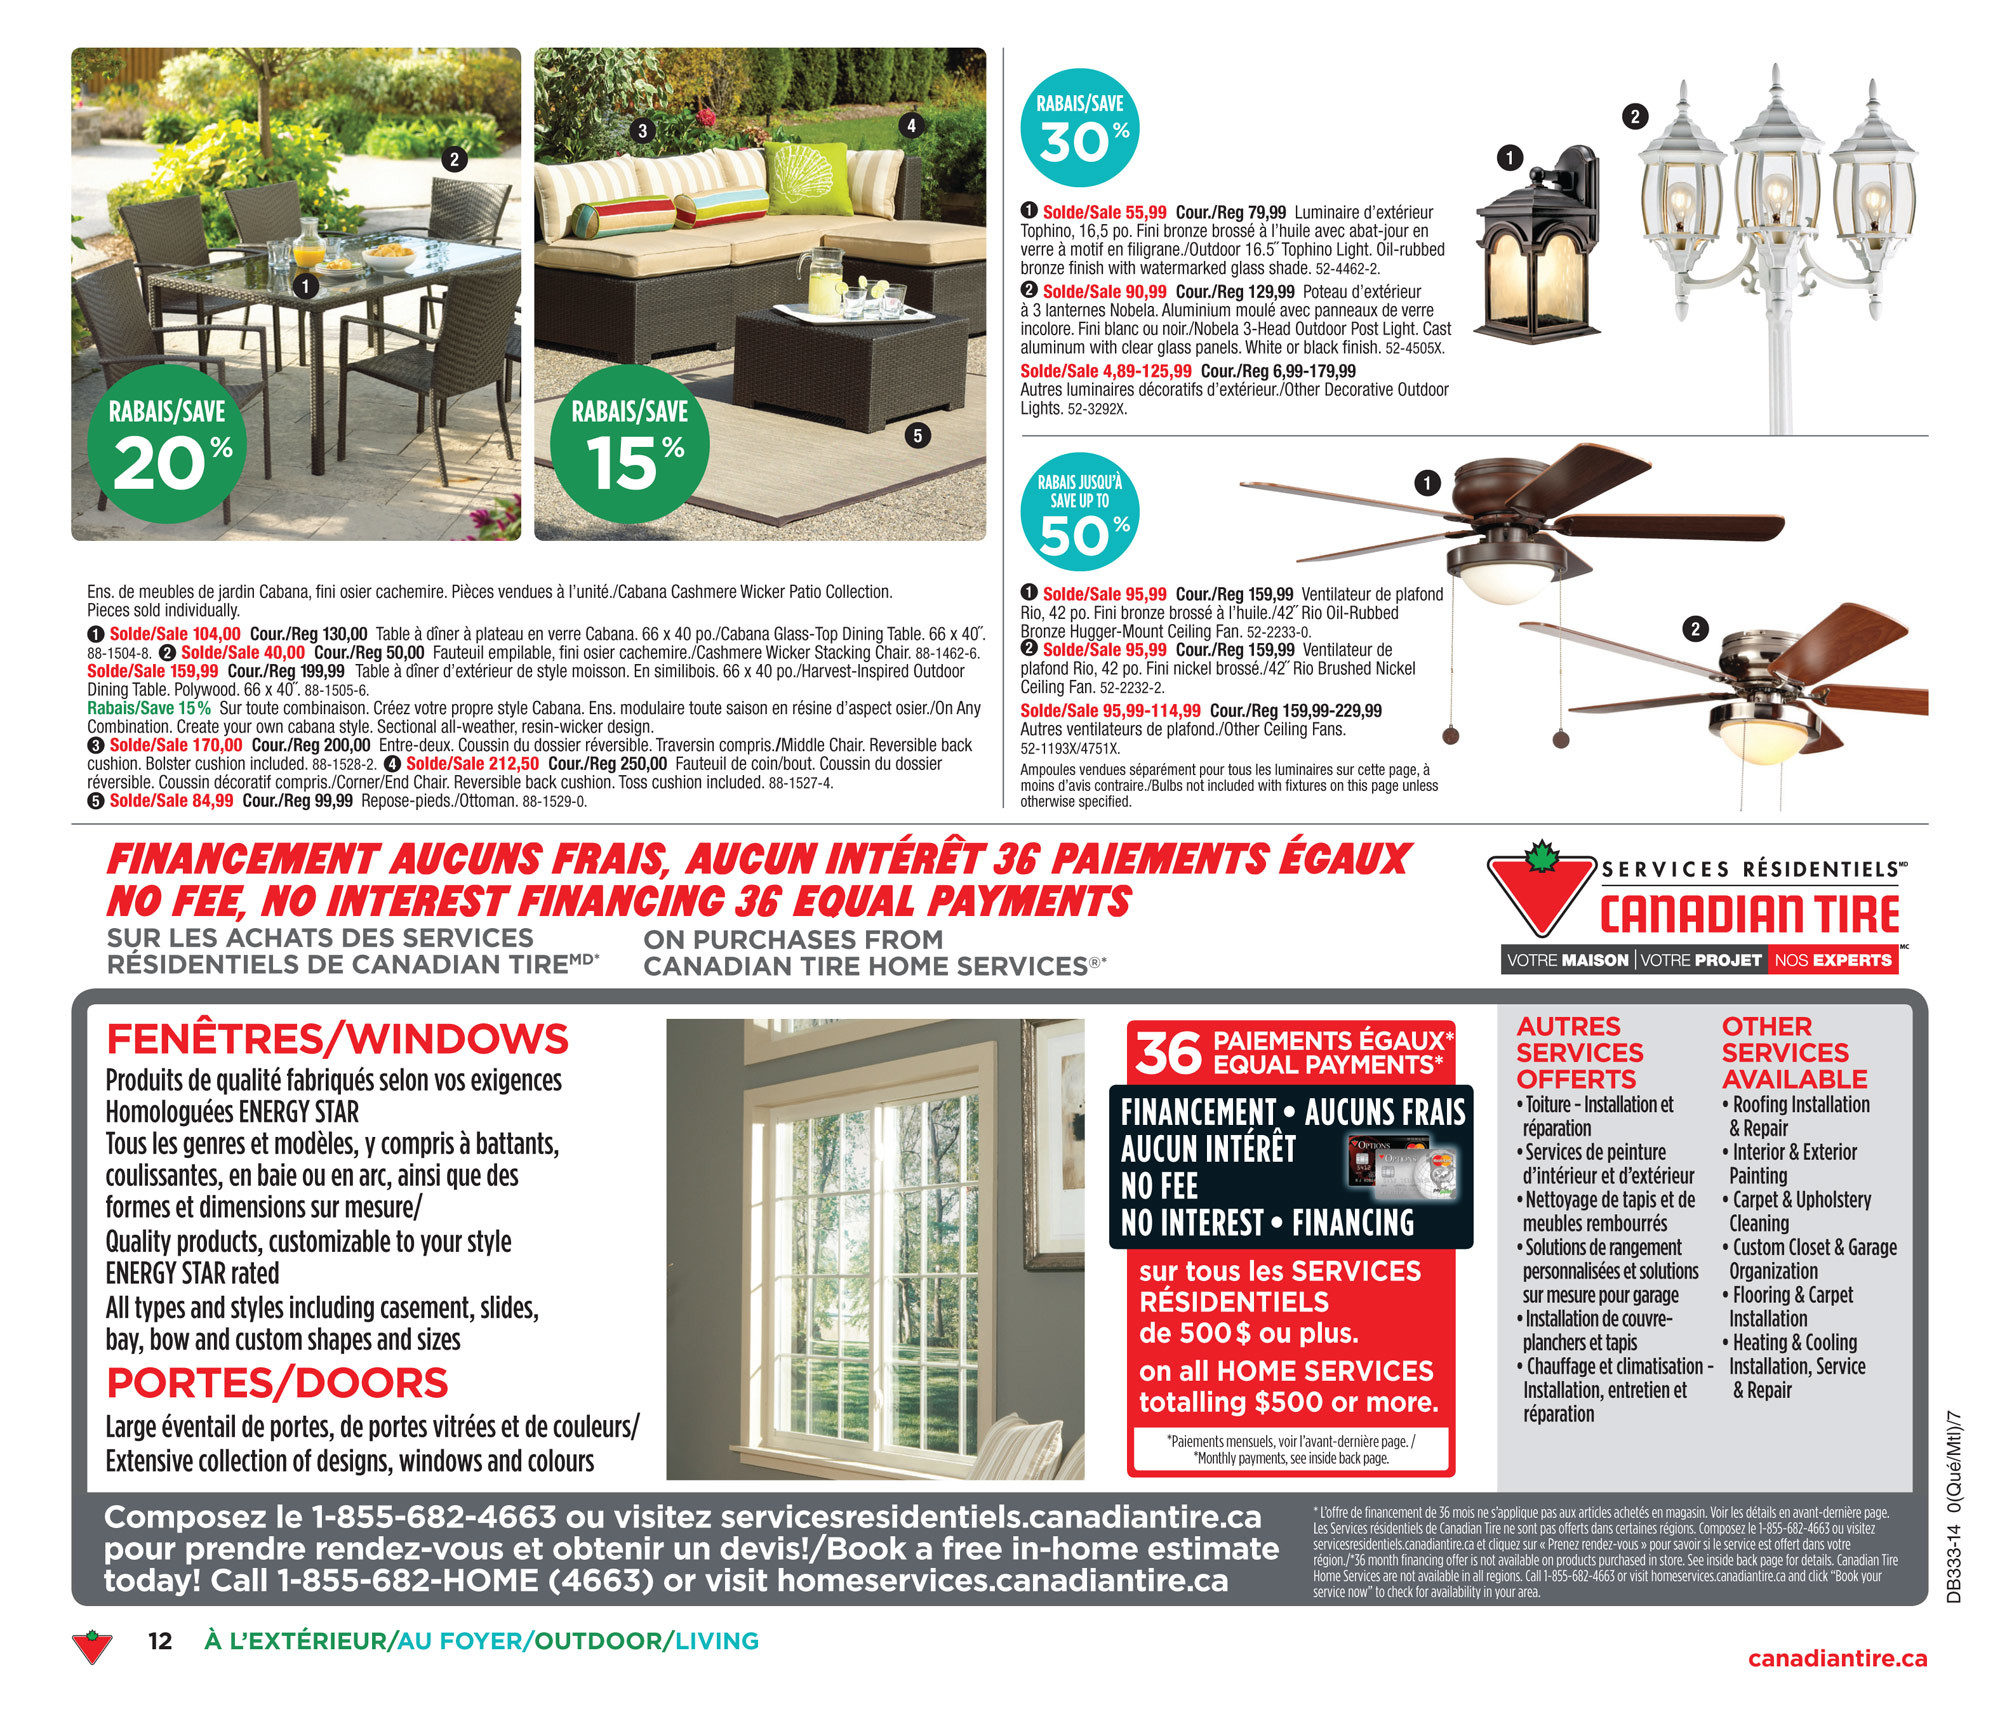 Pouf Exterieur Canadian Tire Canadian Tire Weekly Flyer Weekly Flyer Aug 8 14